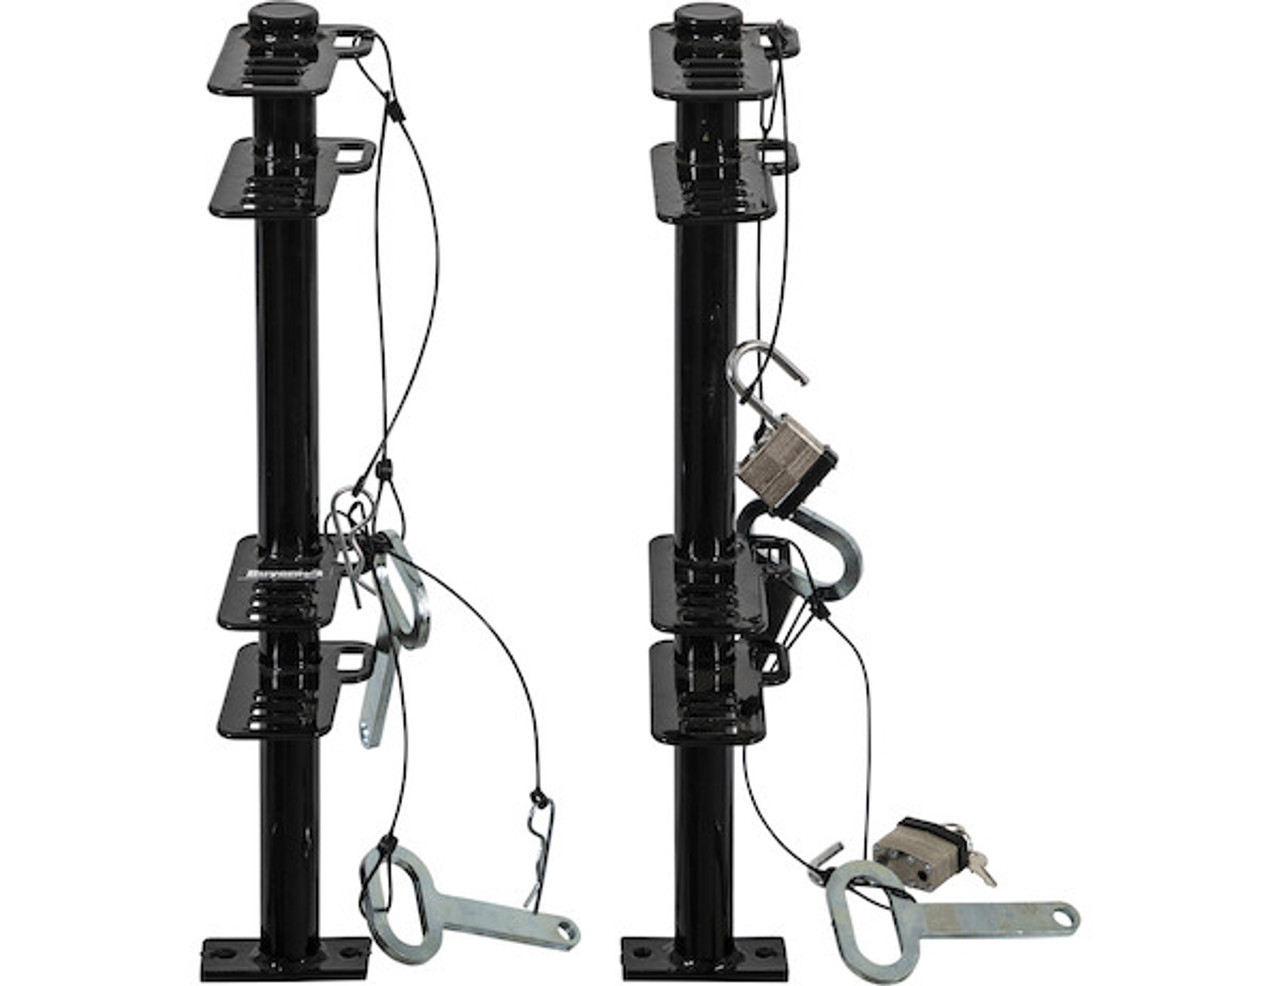 Buyers LT18 Lockable Trimmer Rack Carrier Holder for Up to 2 Trimmers for Trailers and Trucks Picture # 7